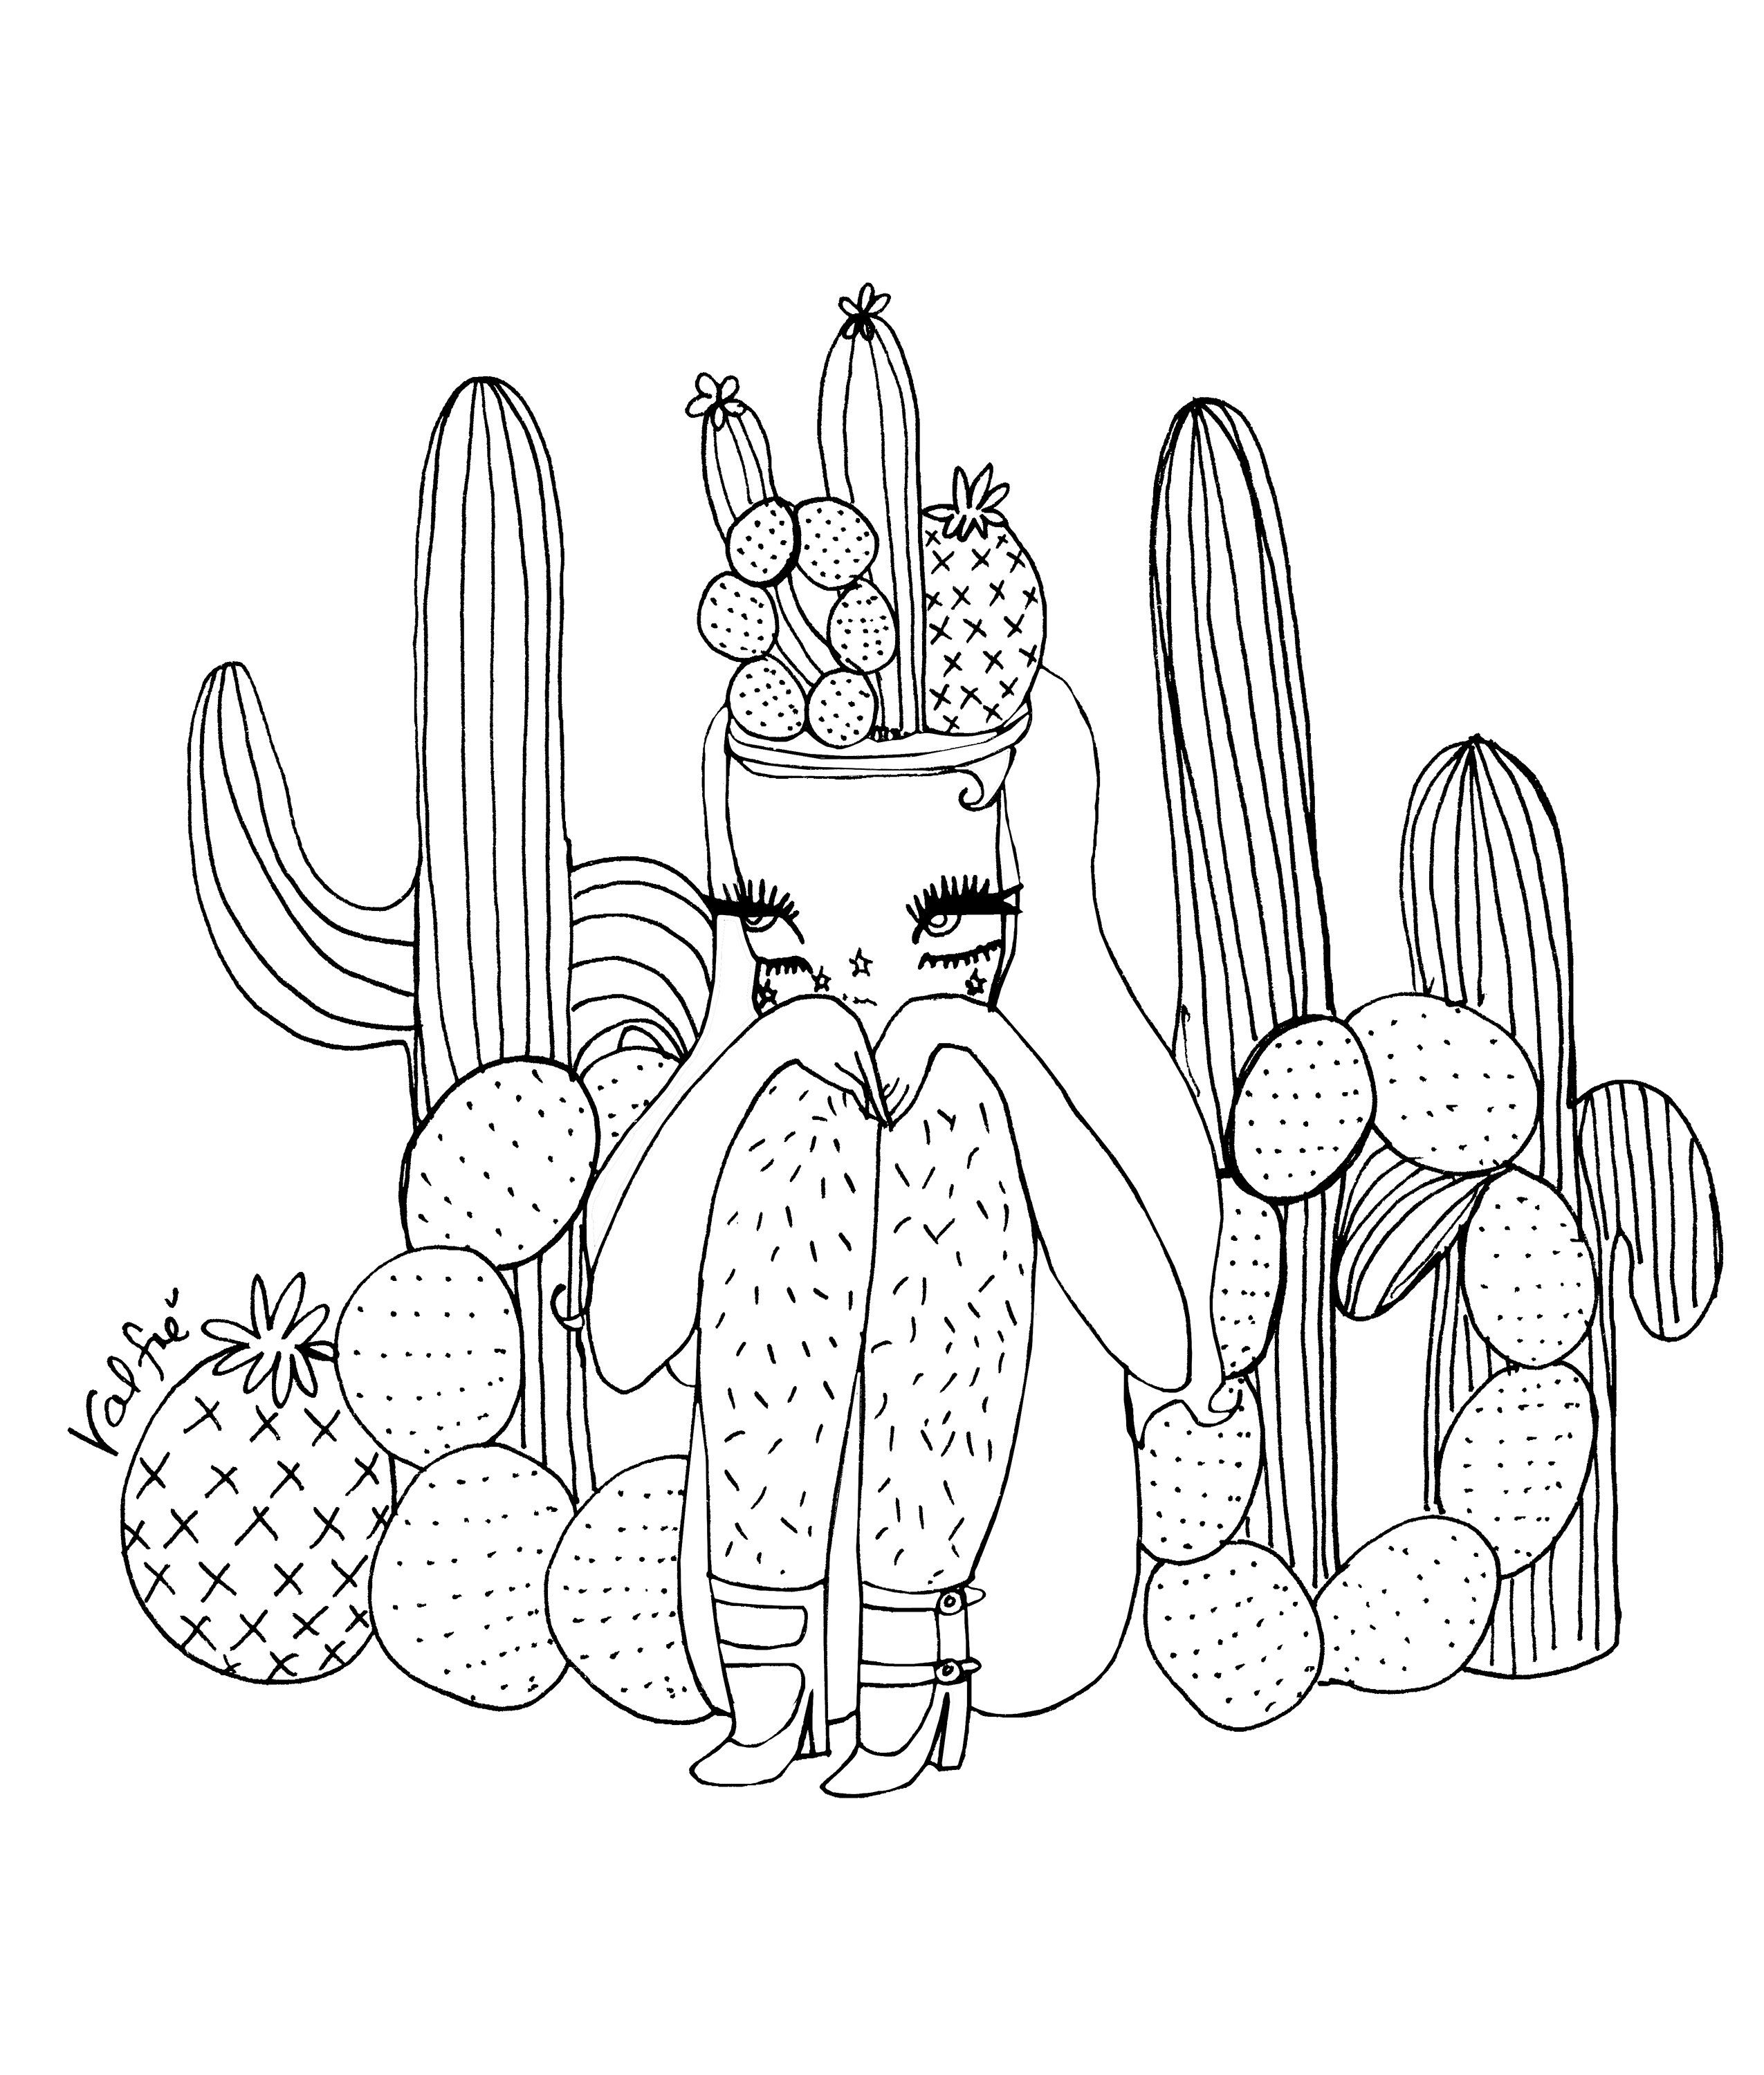 Cacti Babe Valfre Coloring Page With Images Coloring Pages